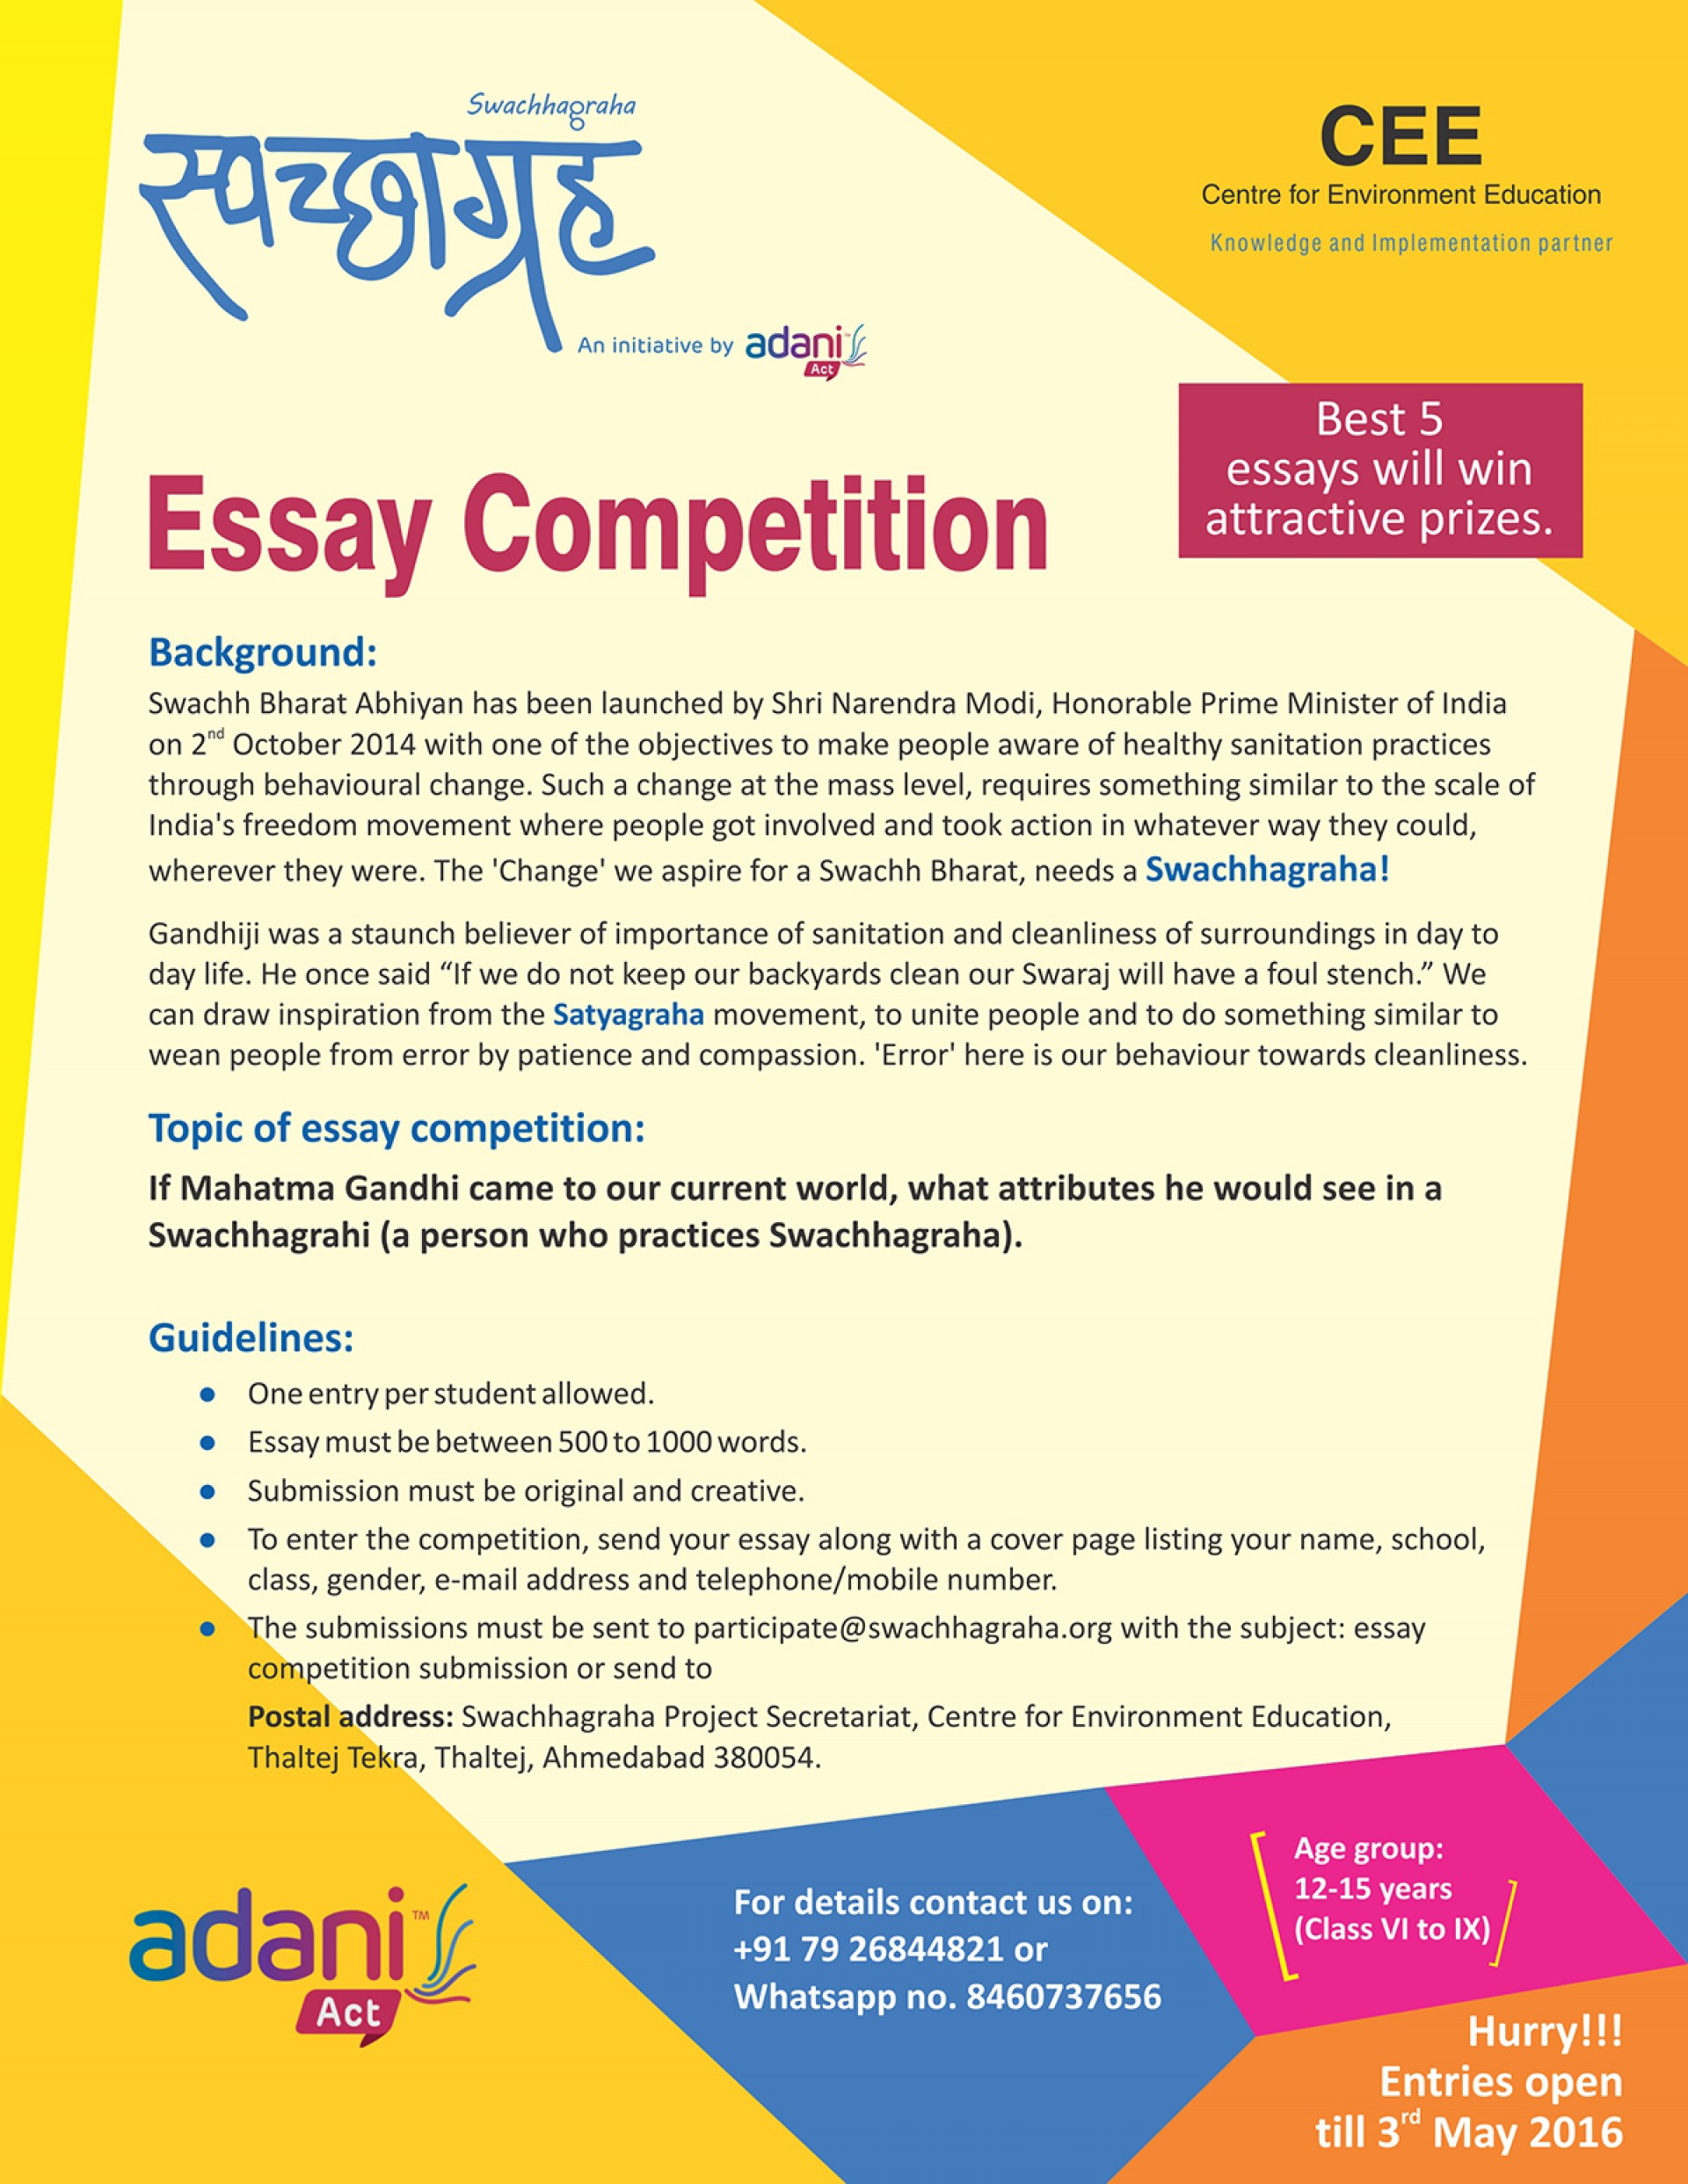 011 20180129171946essay20competition Essay About Cleanliness In School Phenomenal On Toilets Persuasive 1920